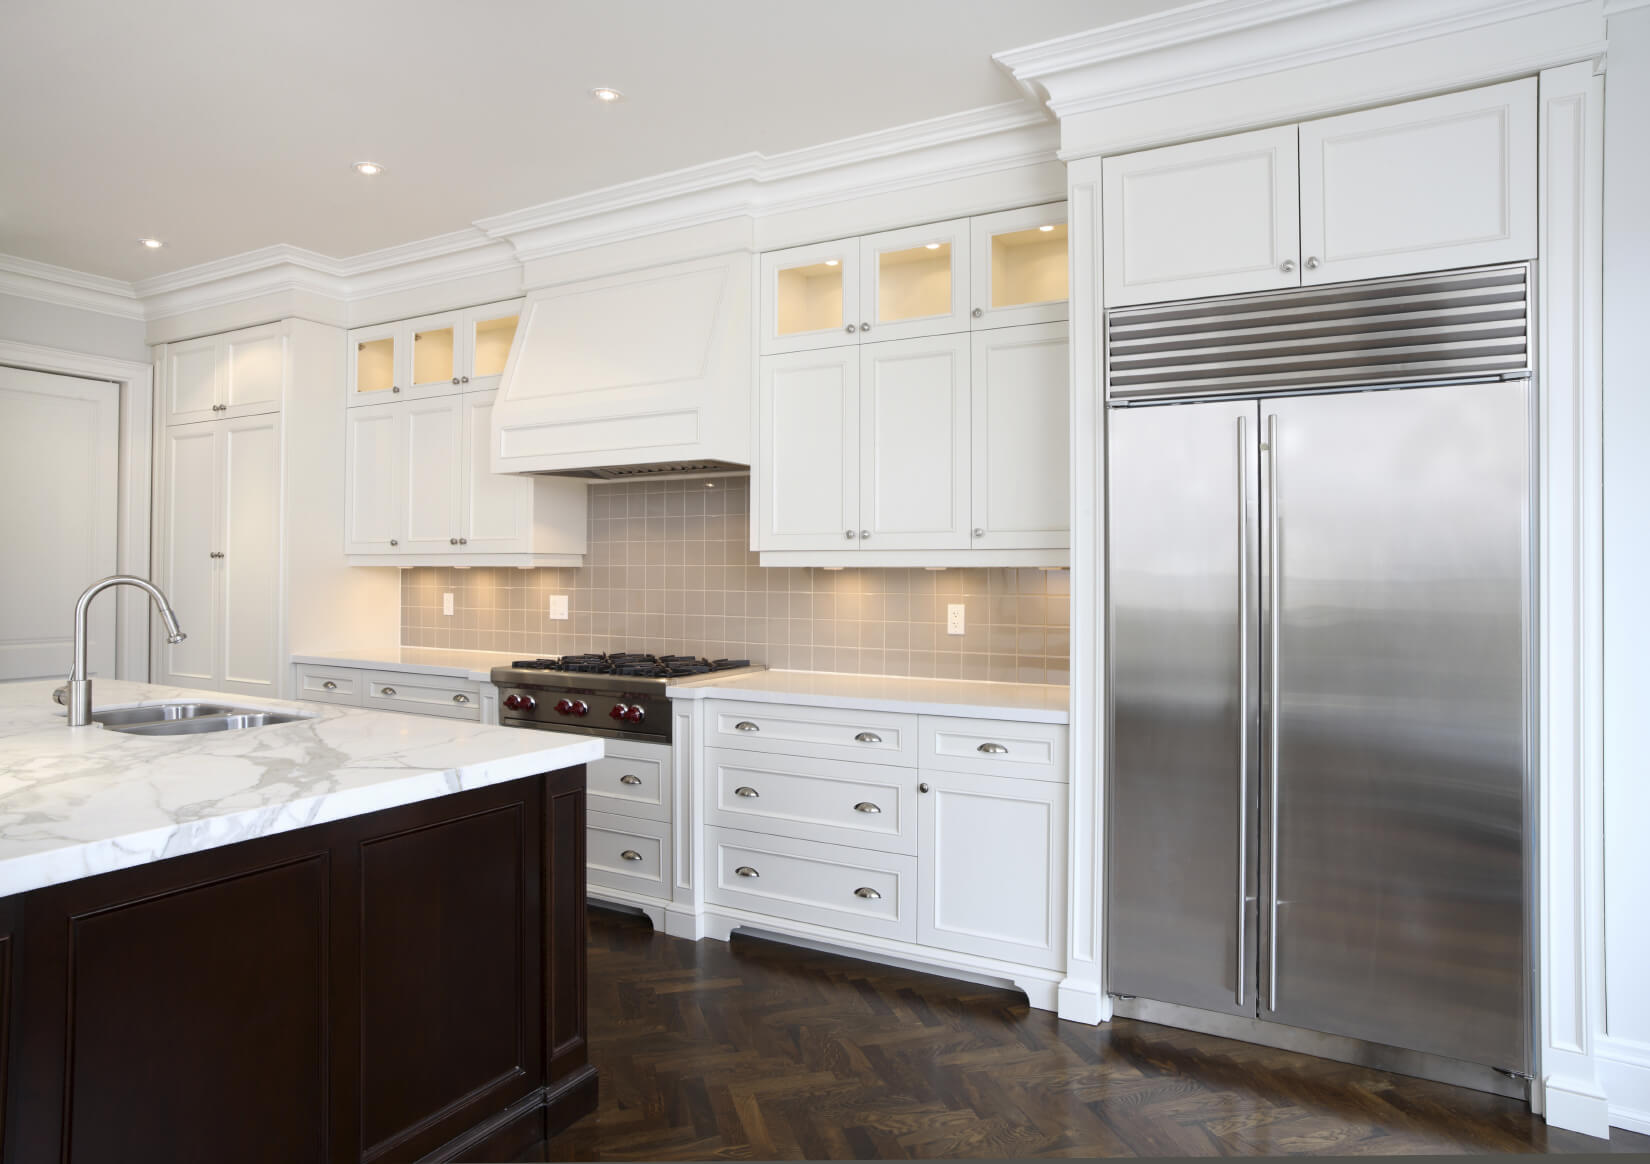 Kitchen features a traditional mix of colors, with natural wood flooring under white painted cabinetry. Marble countertop on island stands in contrast to dark wood siding.